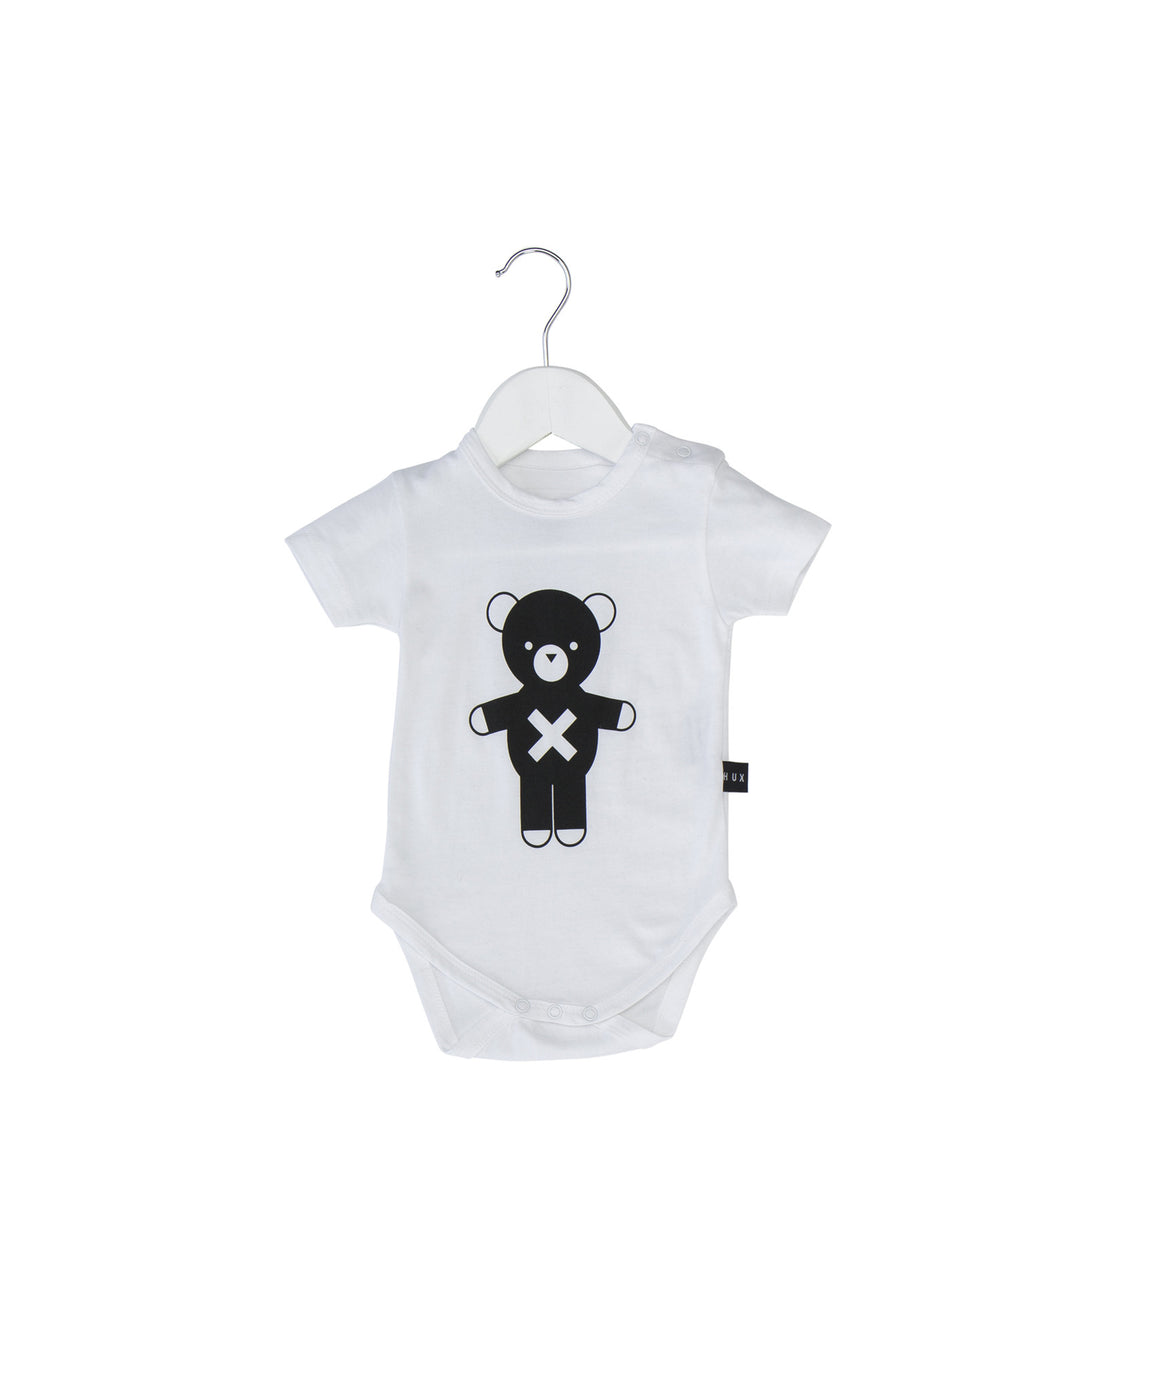 Soldier Bears onesie by Huxbaby